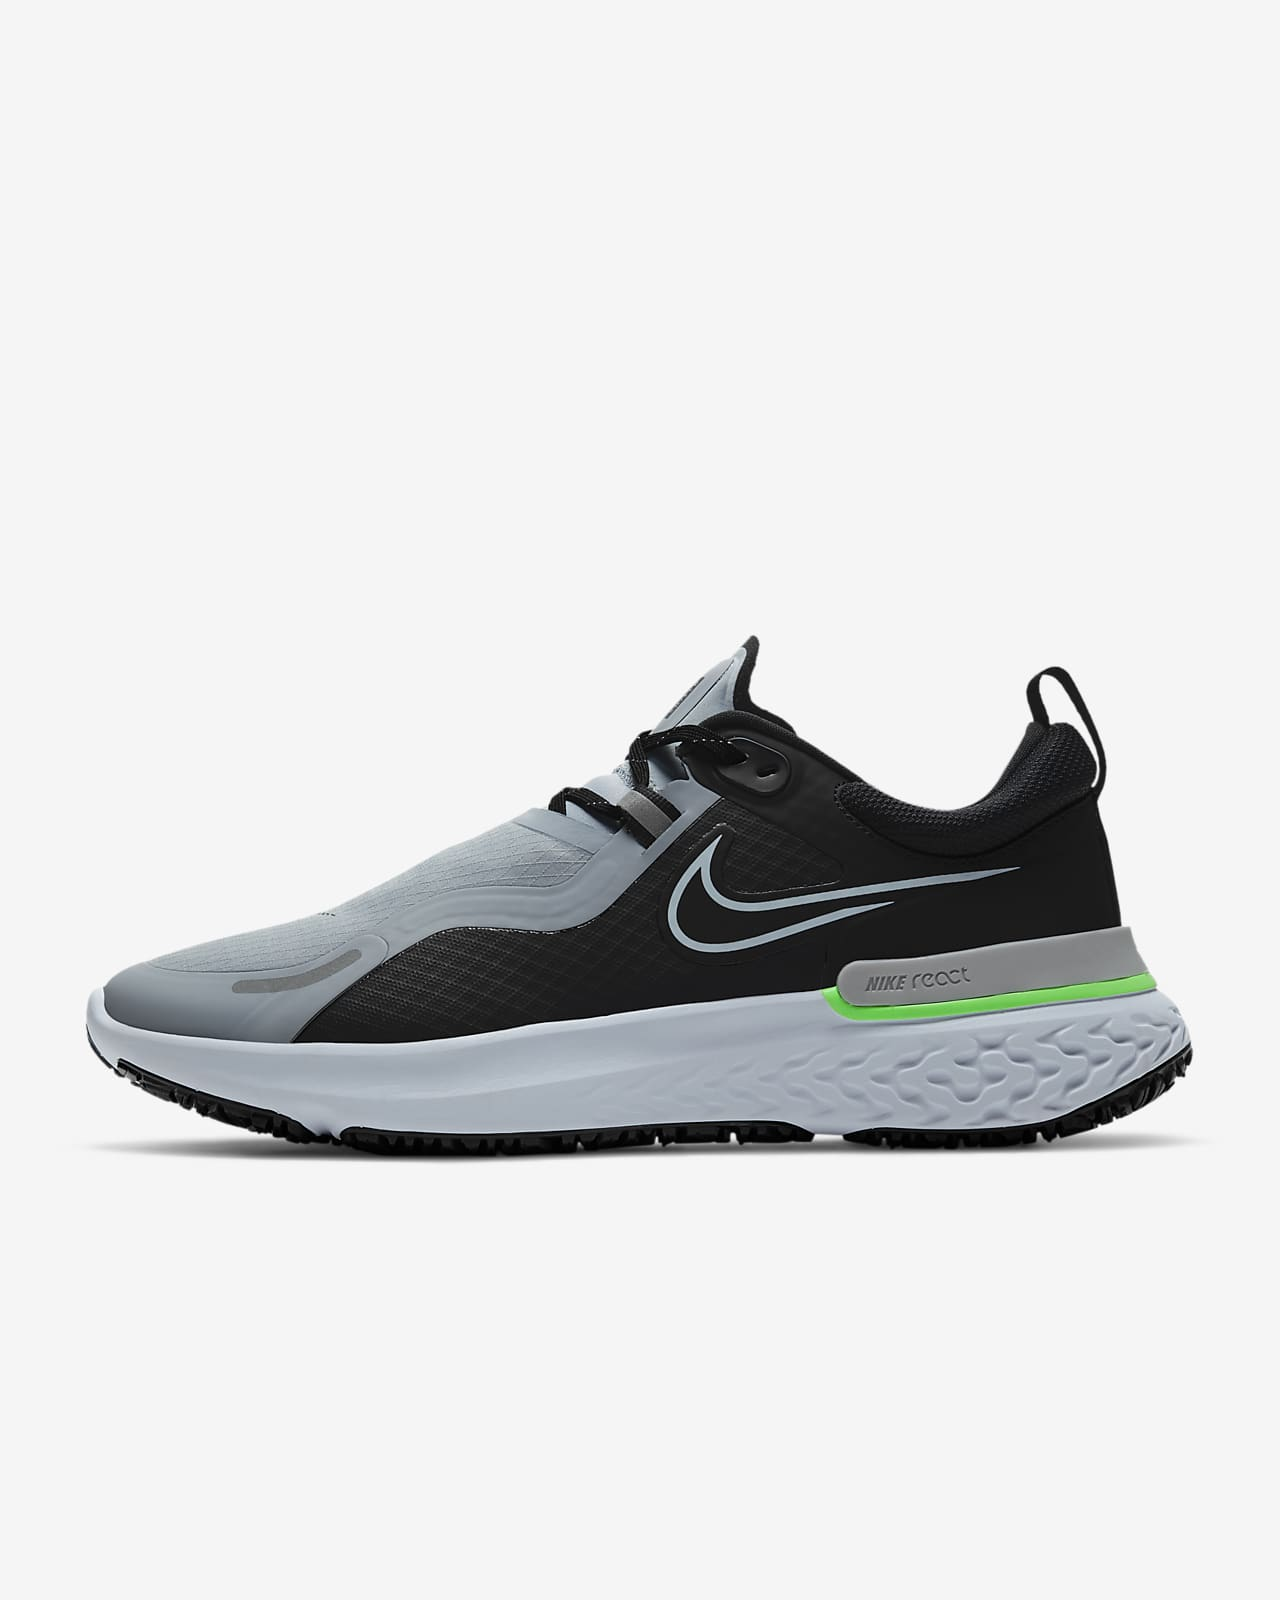 Nike React Miler Shield Men's Running Shoe